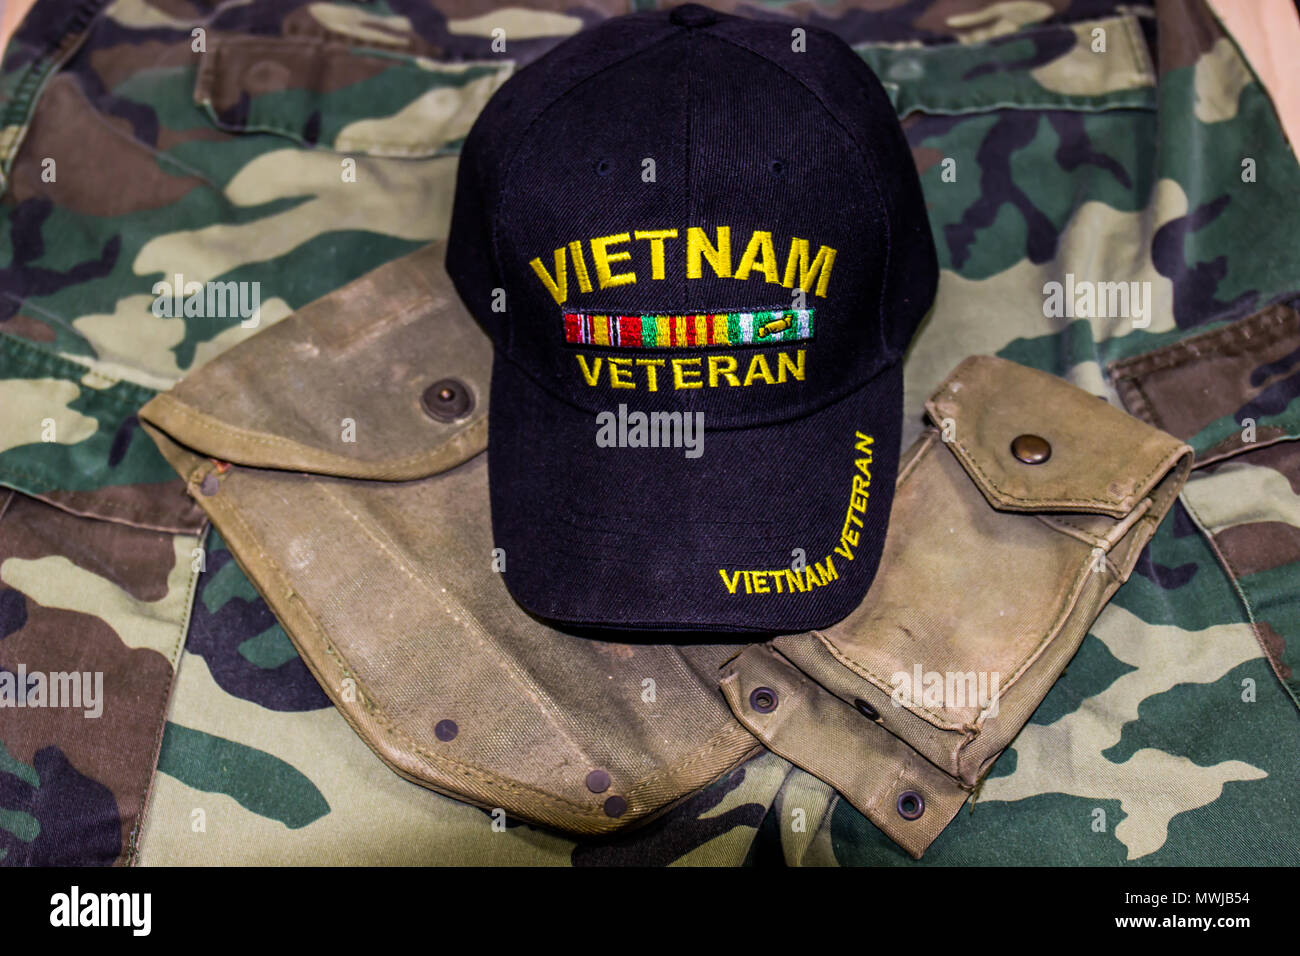 Vietnam Veteran Hat With Ammo Pouch On Camouflage Uniform - Stock Image